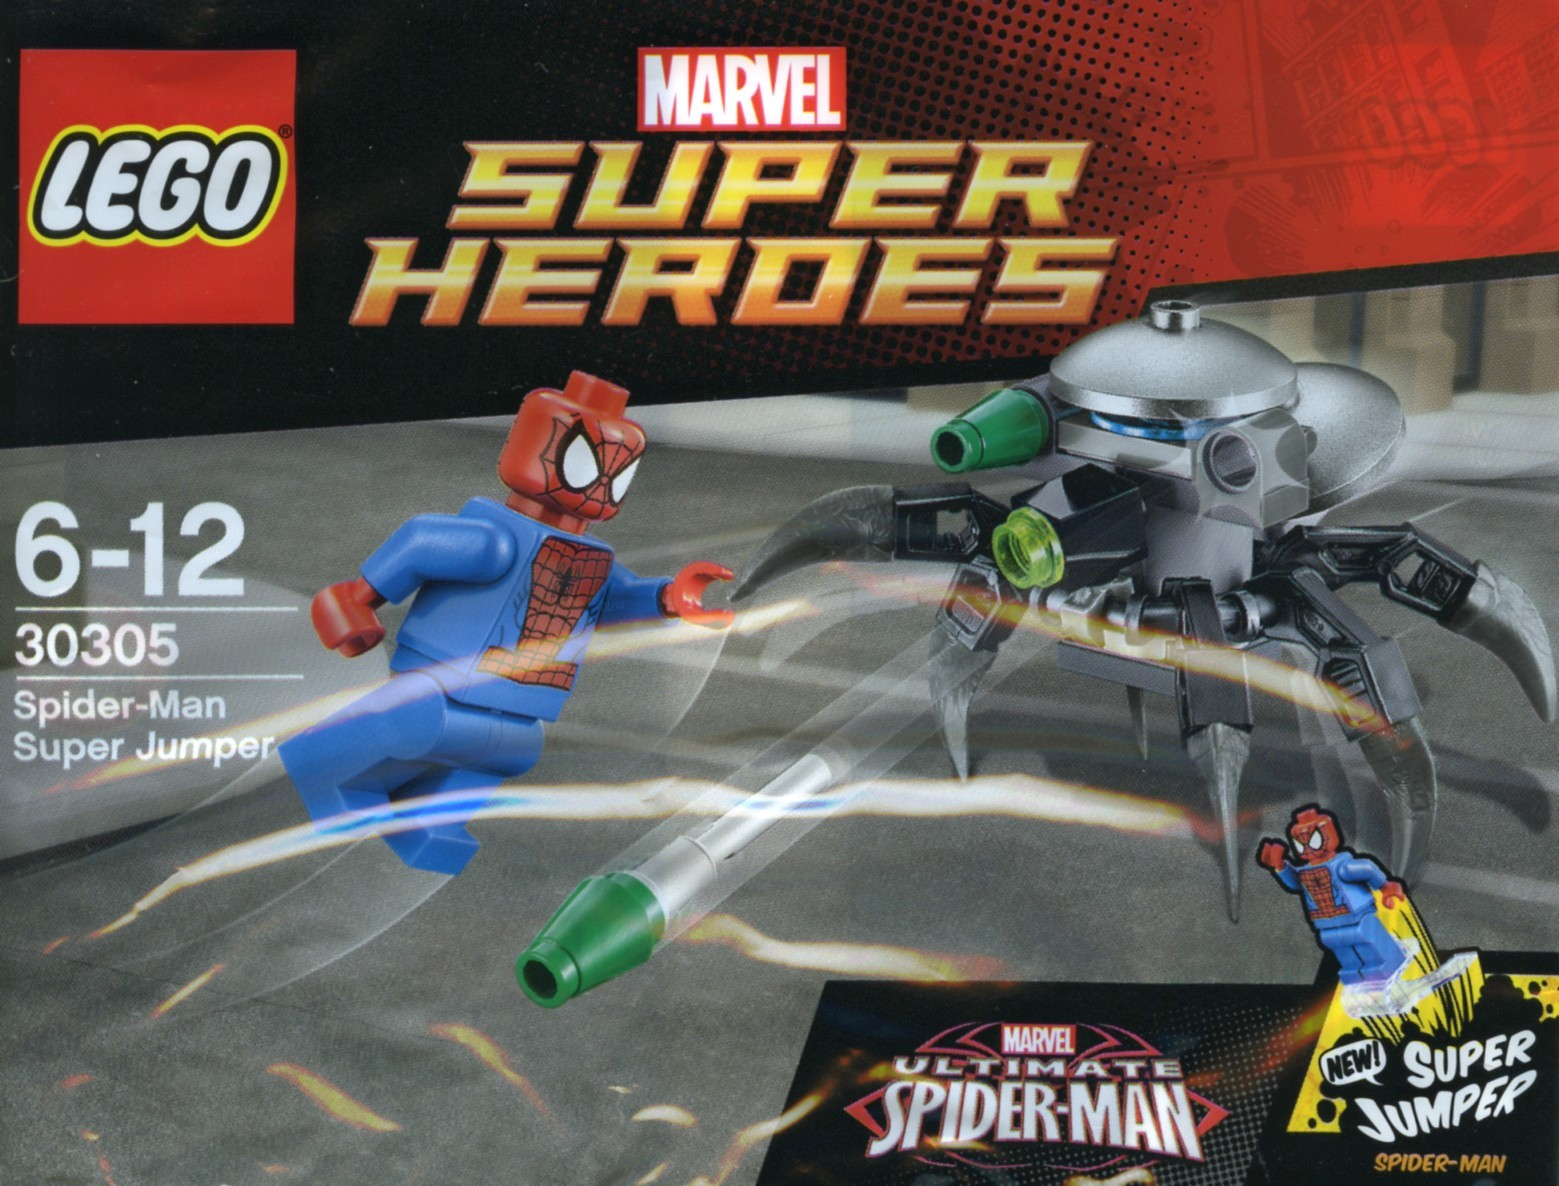 lego marvel 2015 spider-man super jumper